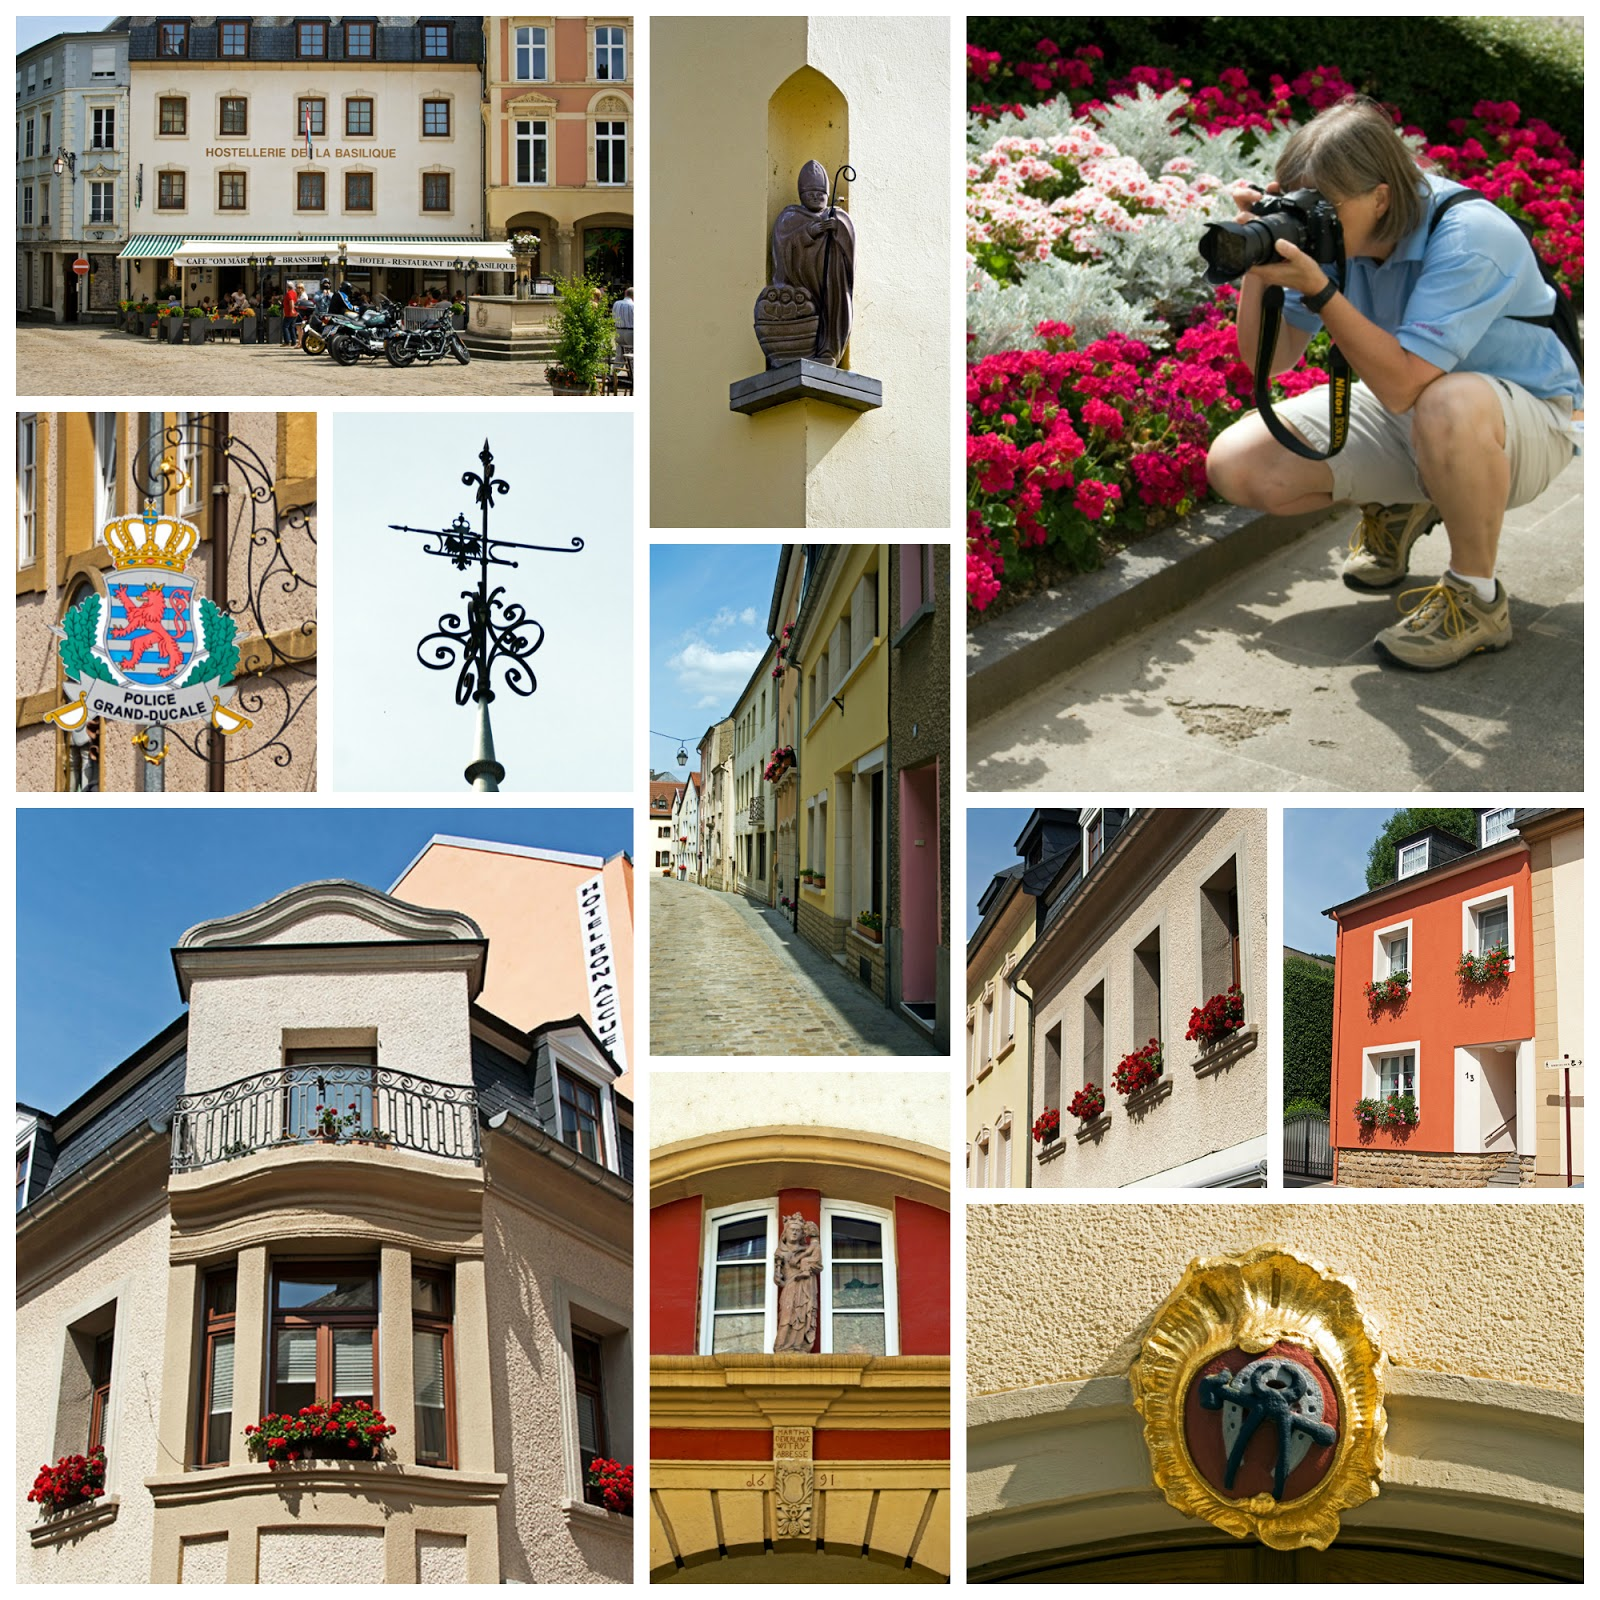 diekirch christian singles Luxembourg ( luxembourgish : lëtzebuerg  german : luxemburg ), officially the grand duchy of luxembourg , is a landlocked country in western europe  it is bordered by belgium to the west and north, germany to the east, and france to the south.